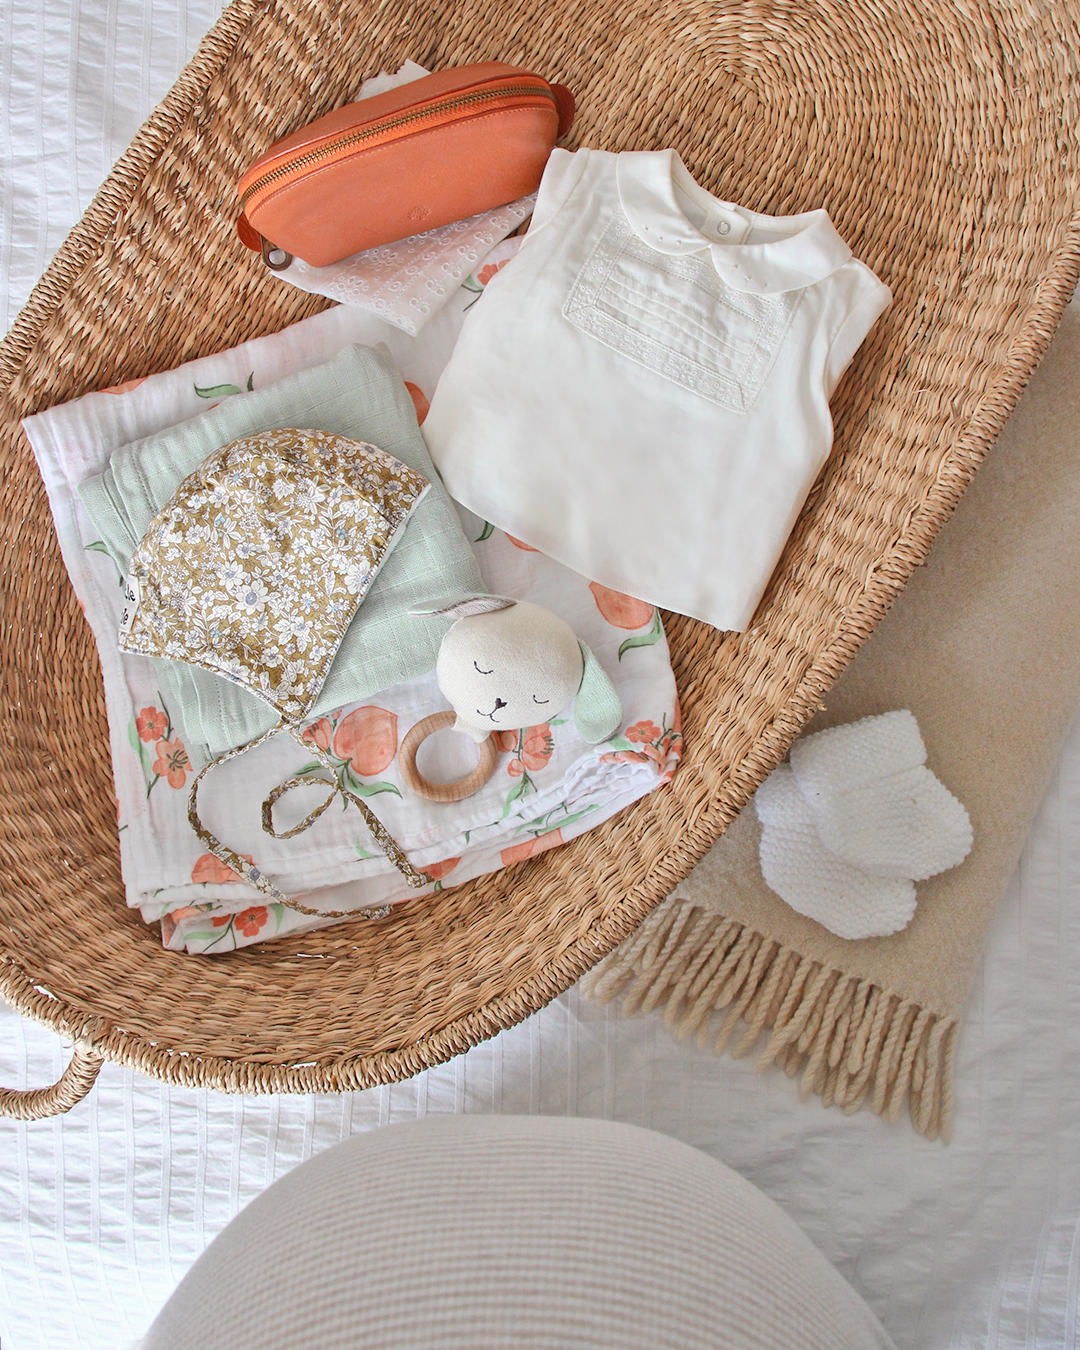 A little selection of our baby things, and my bump at 38 weeks!